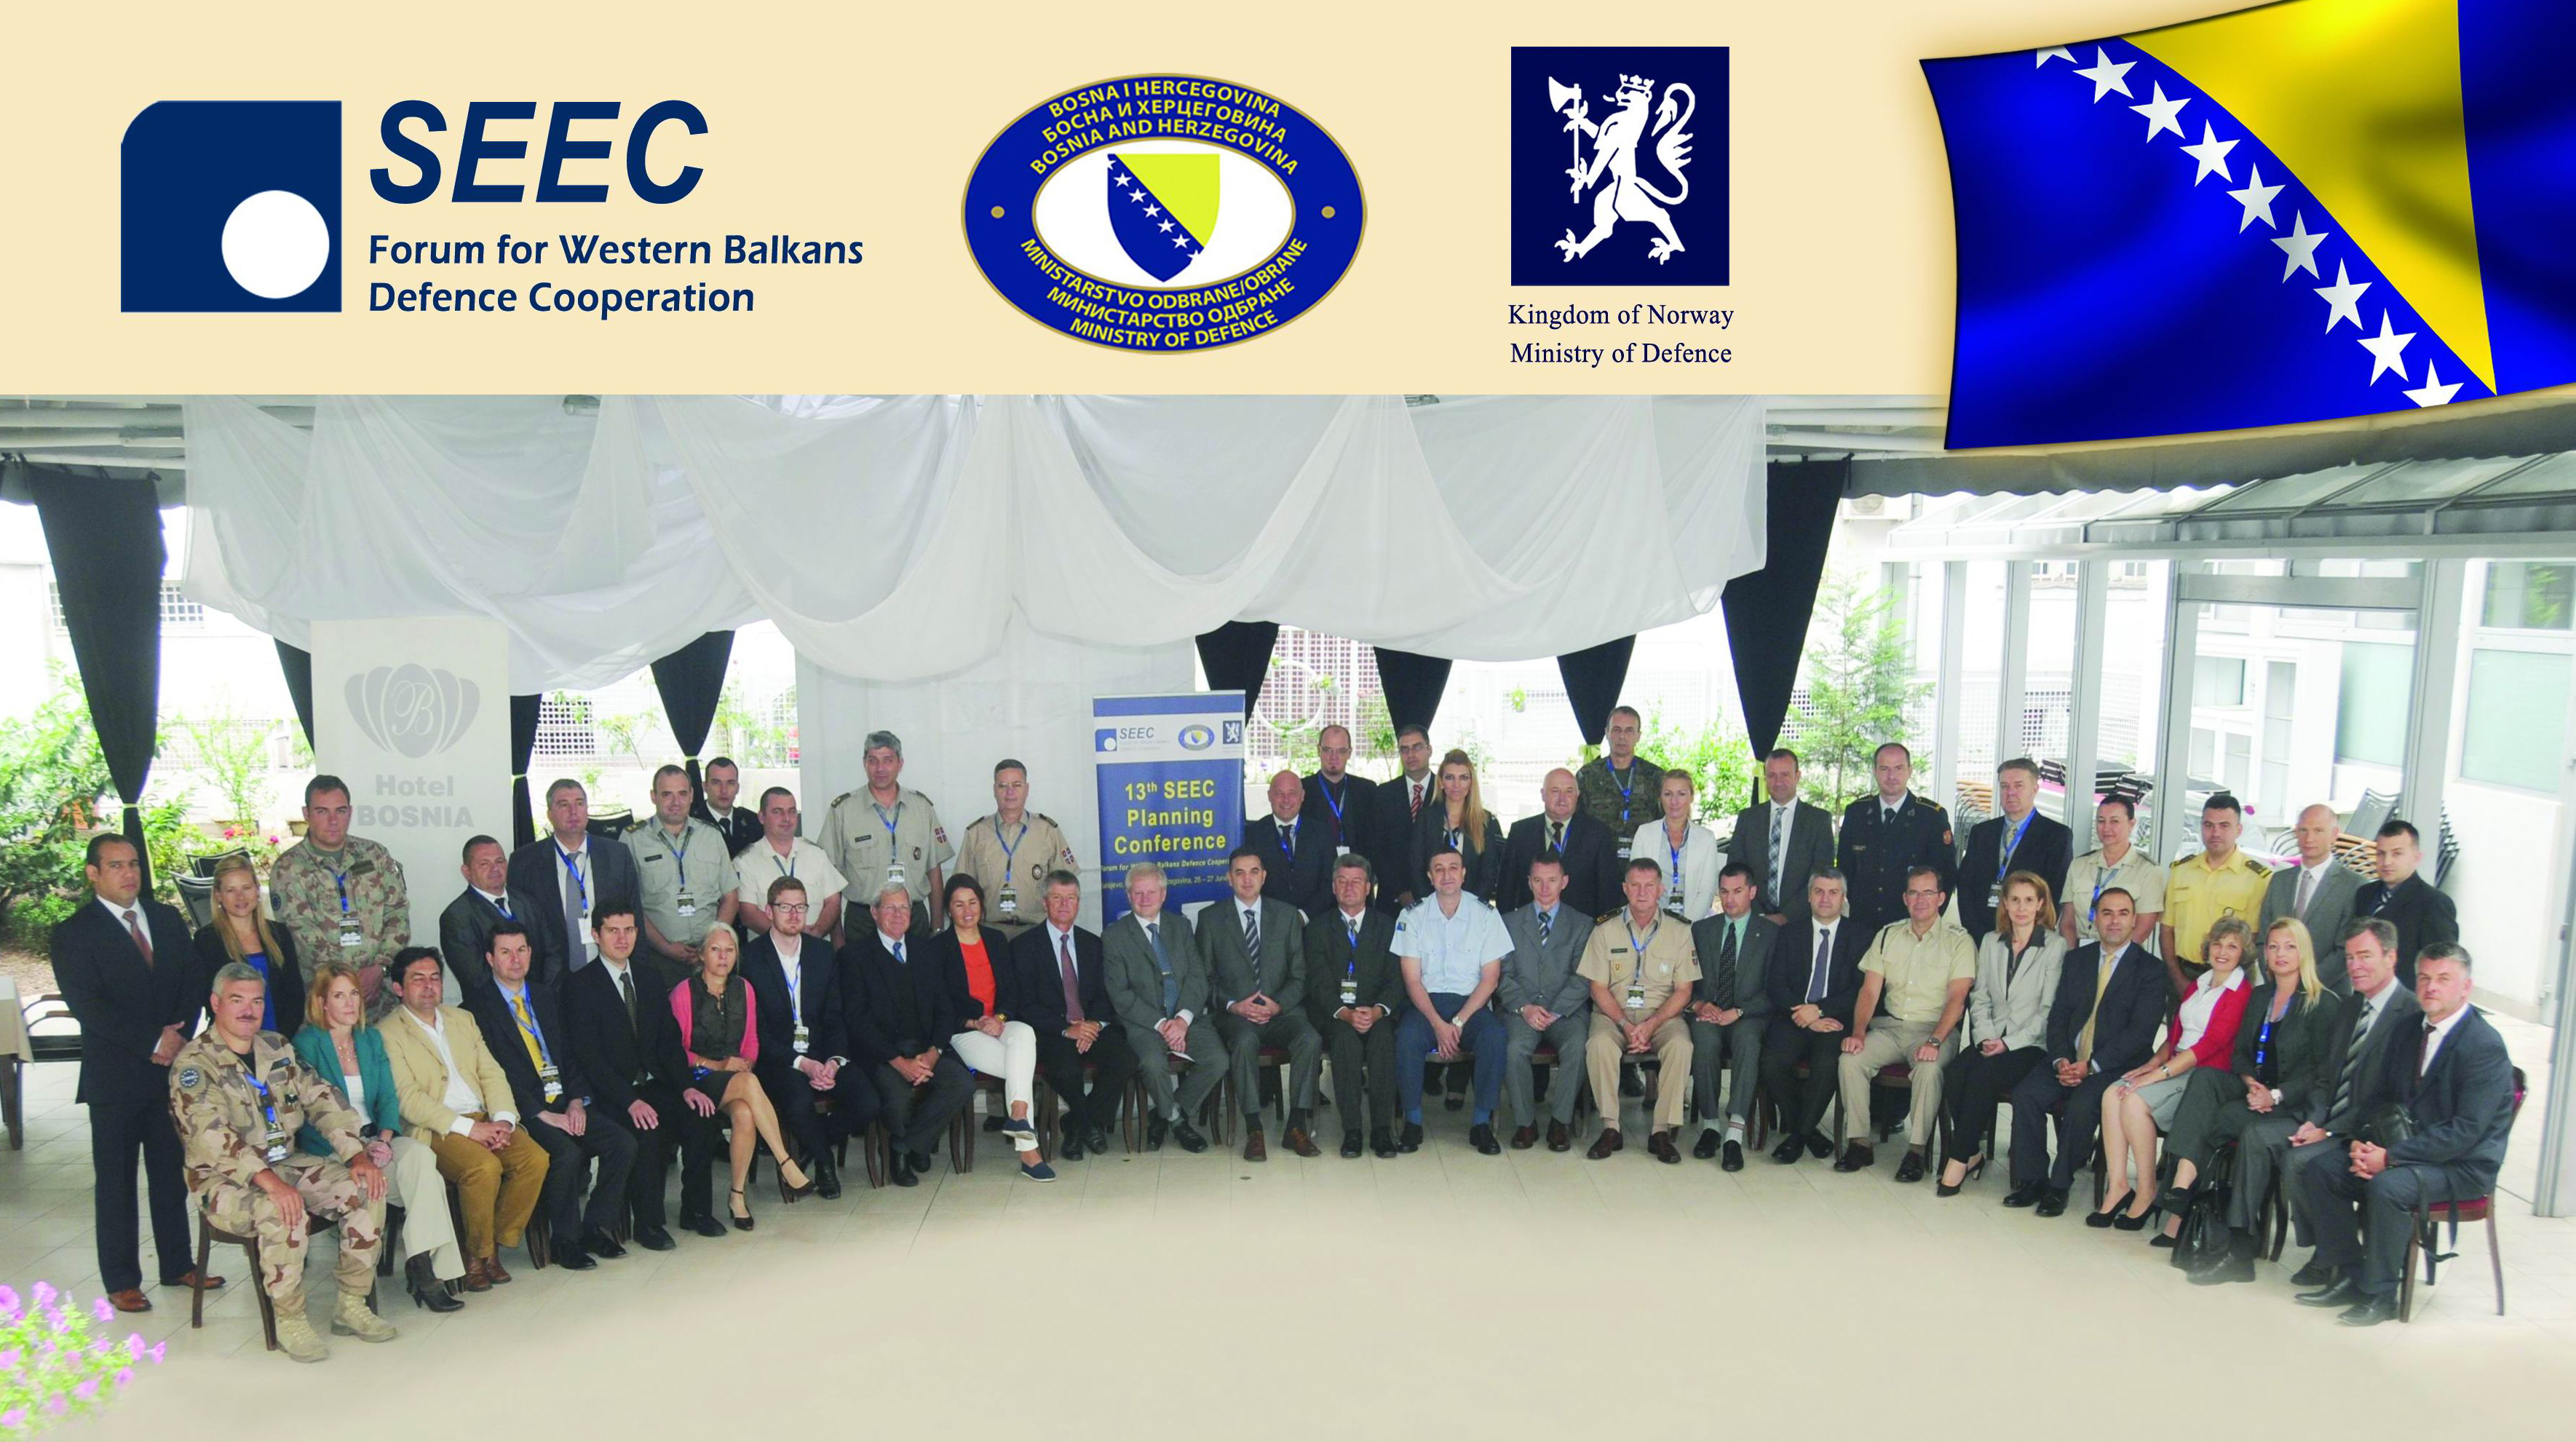 Cooperation of the countries of Western Balkans in defence